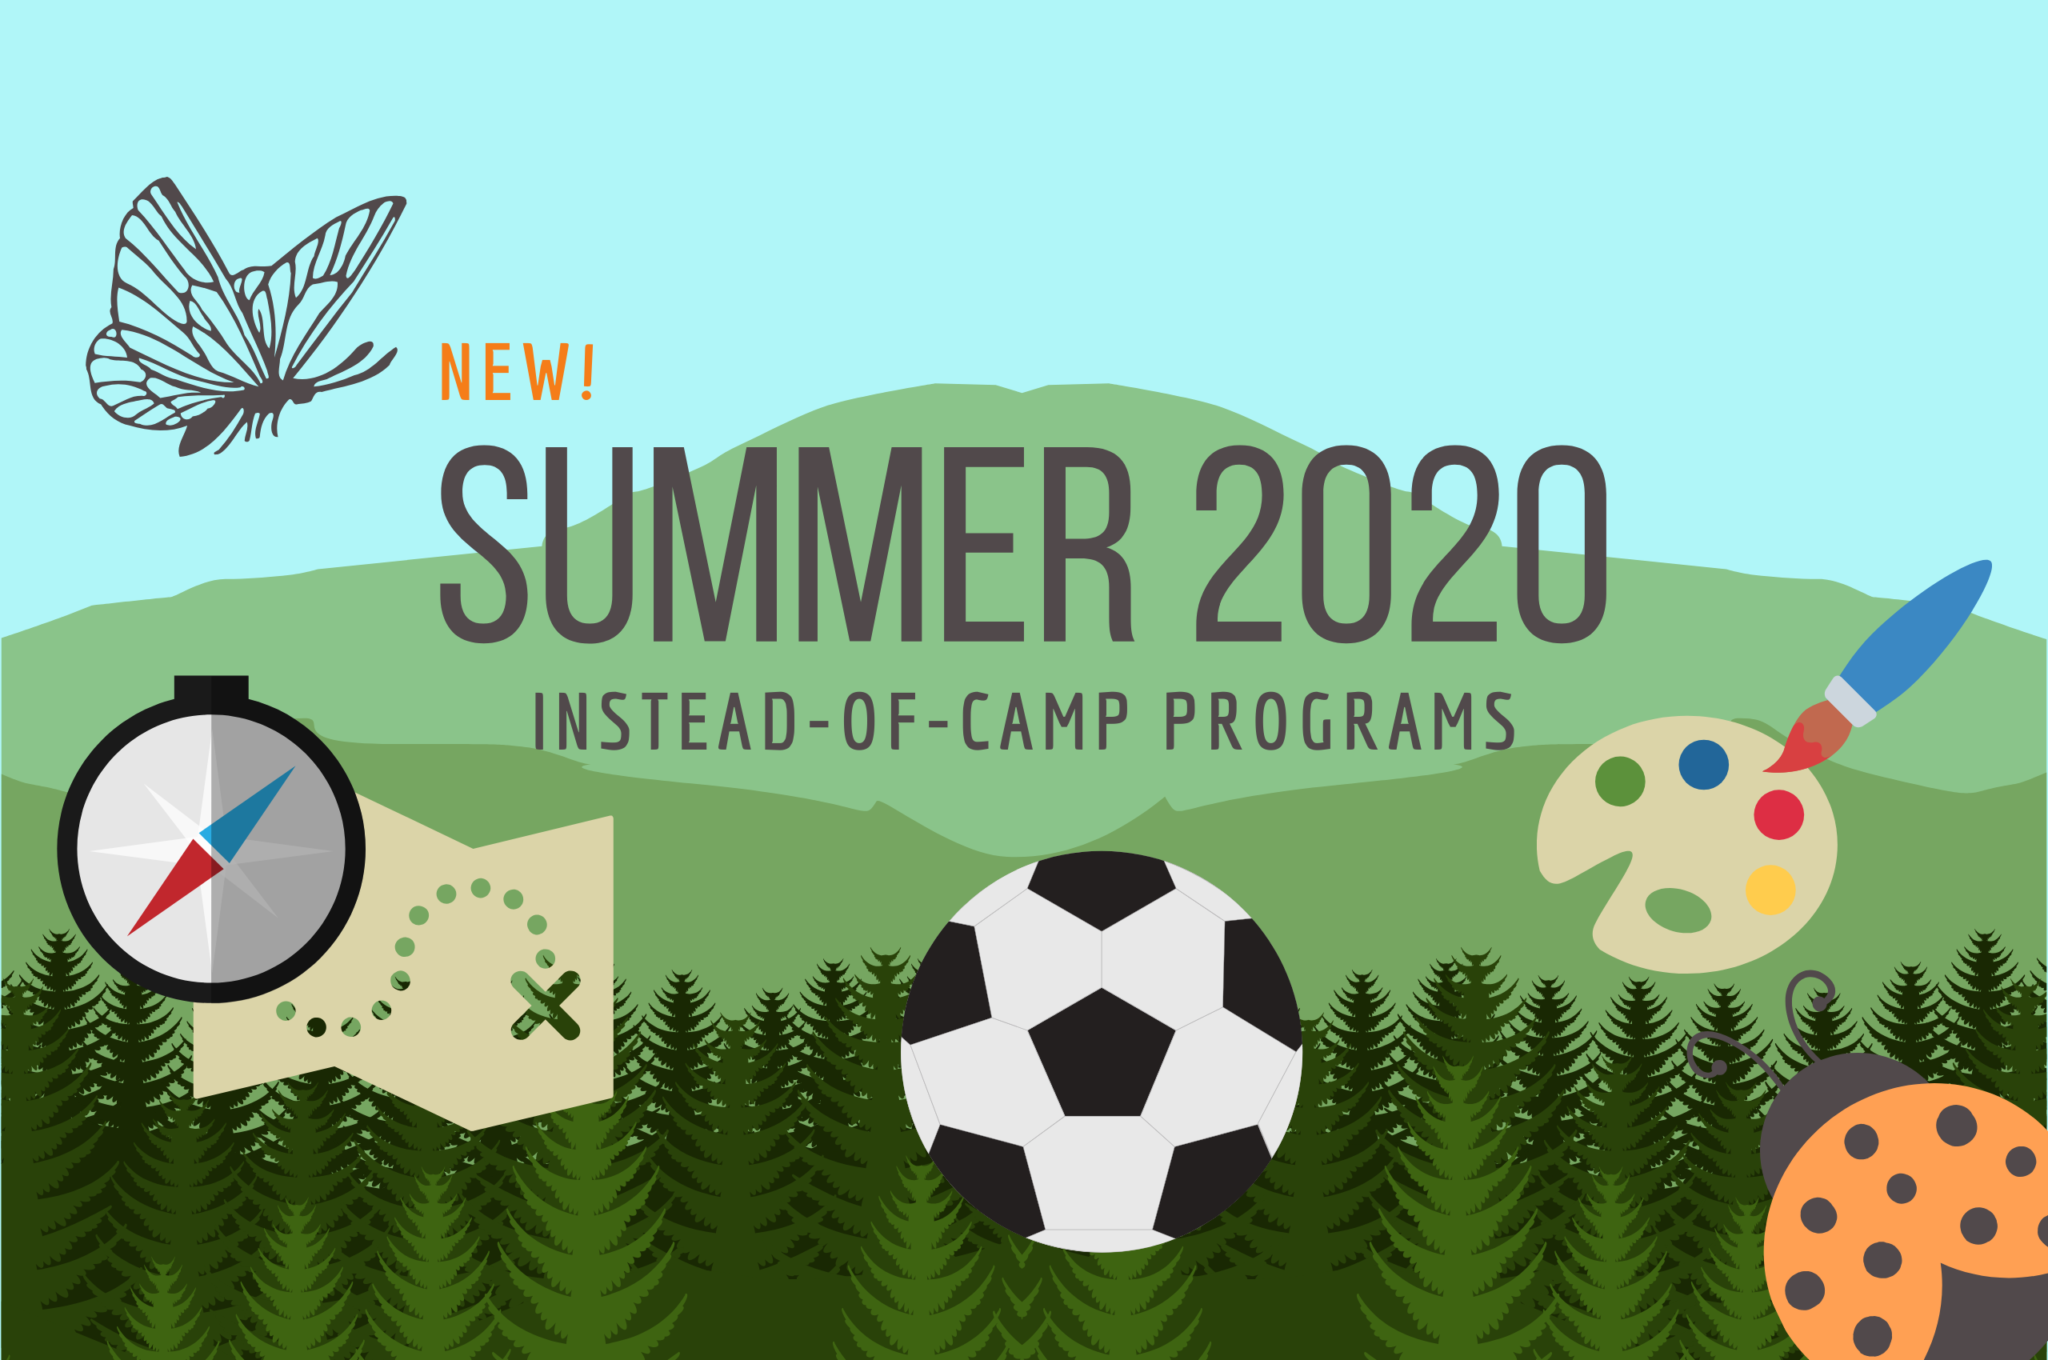 new! Summer 2020 instead of camps programs